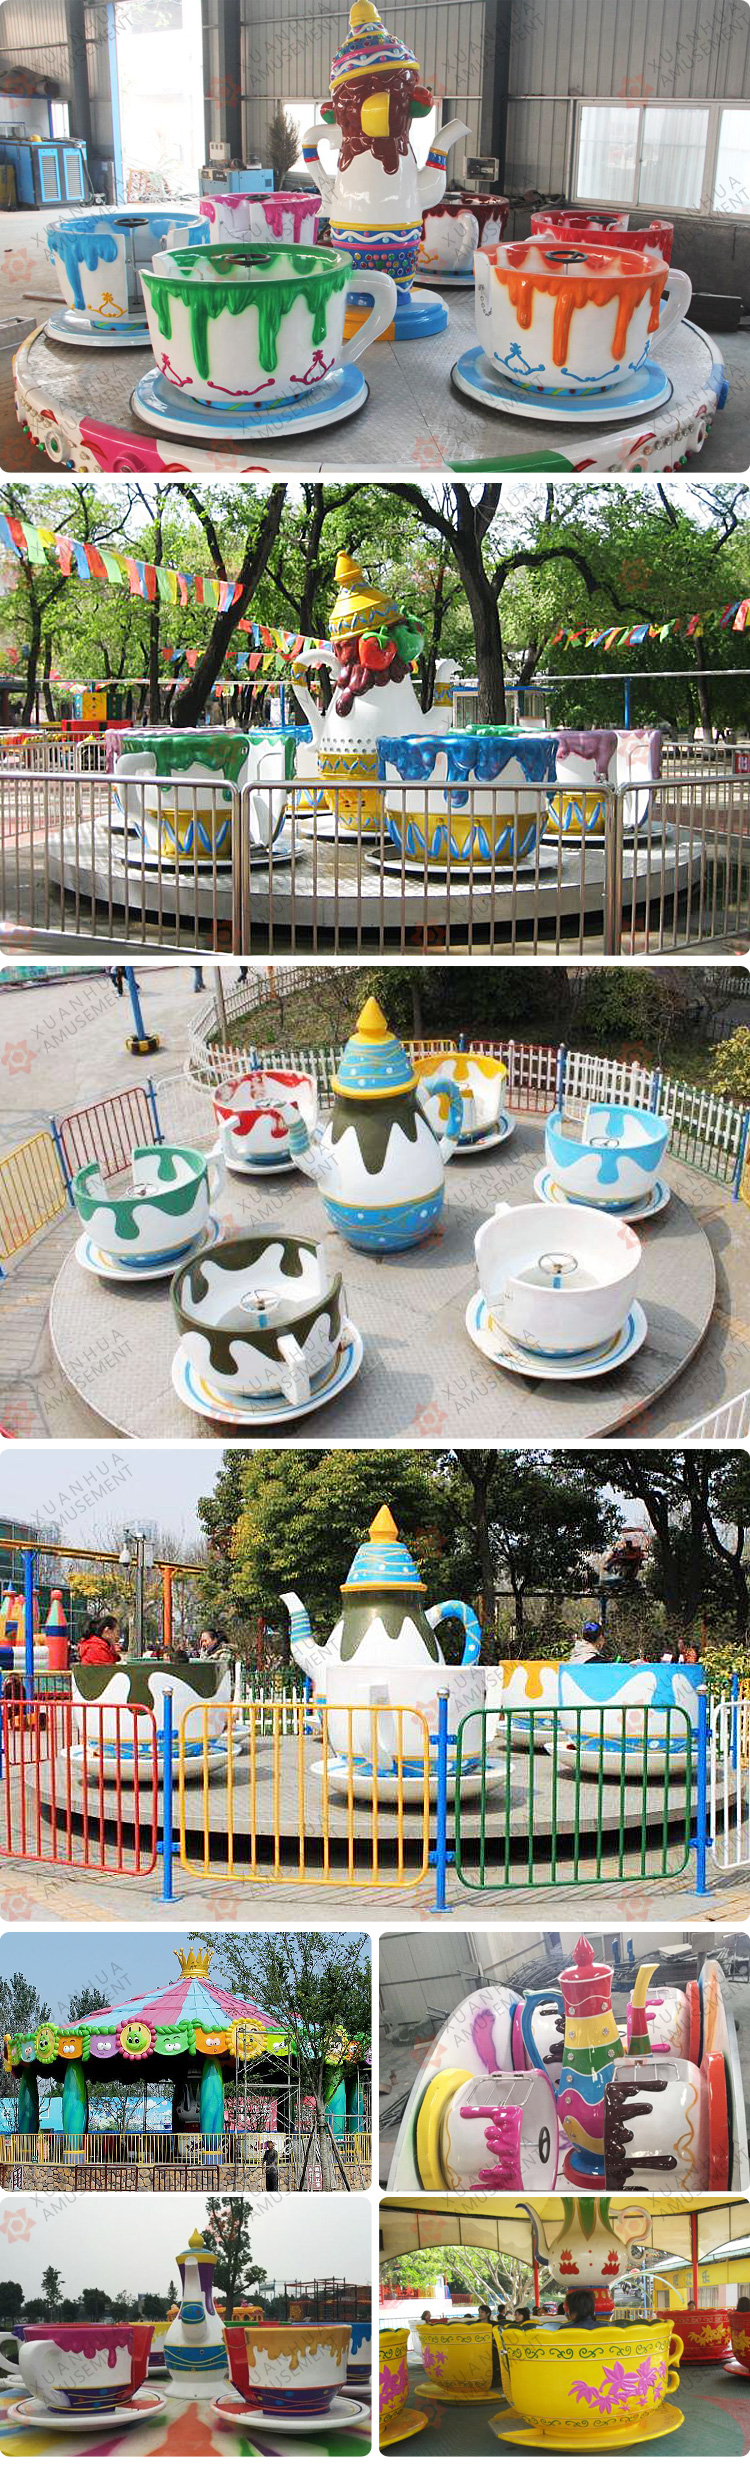 Theme park amusement teapot ride amusement park coffee cup equipment spinning teacup ride